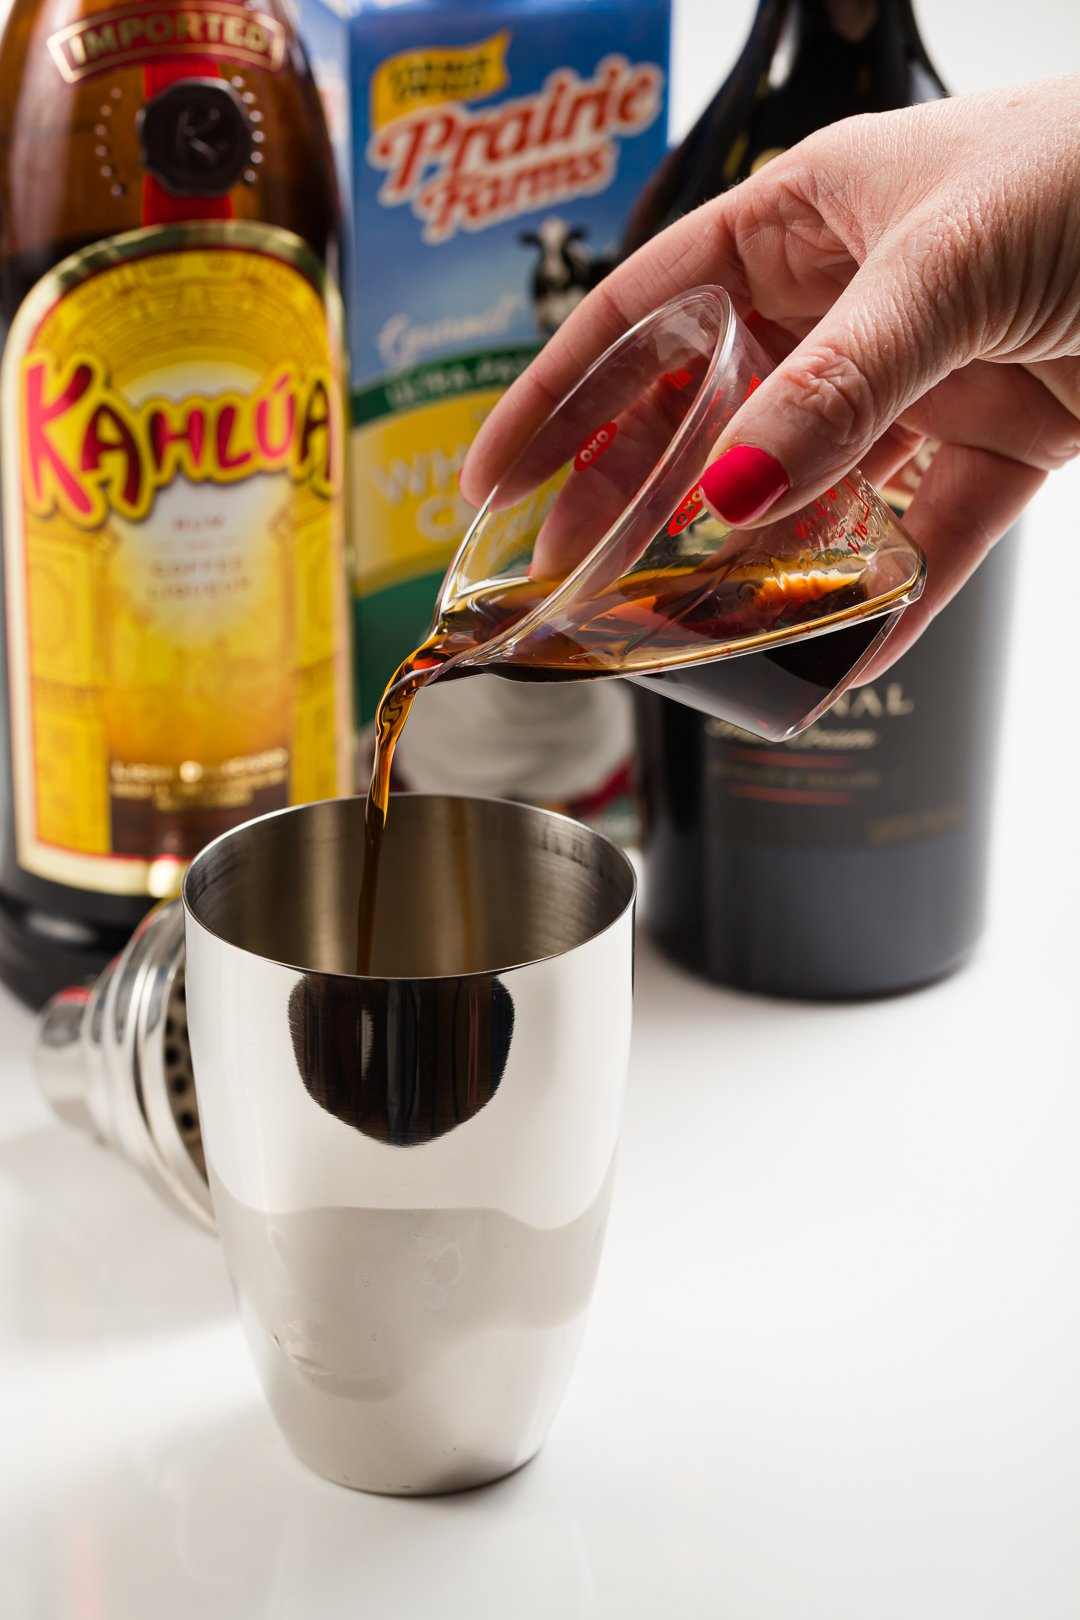 Kahlua added to a cocktail shaker with ice to make a mudslide cocktail